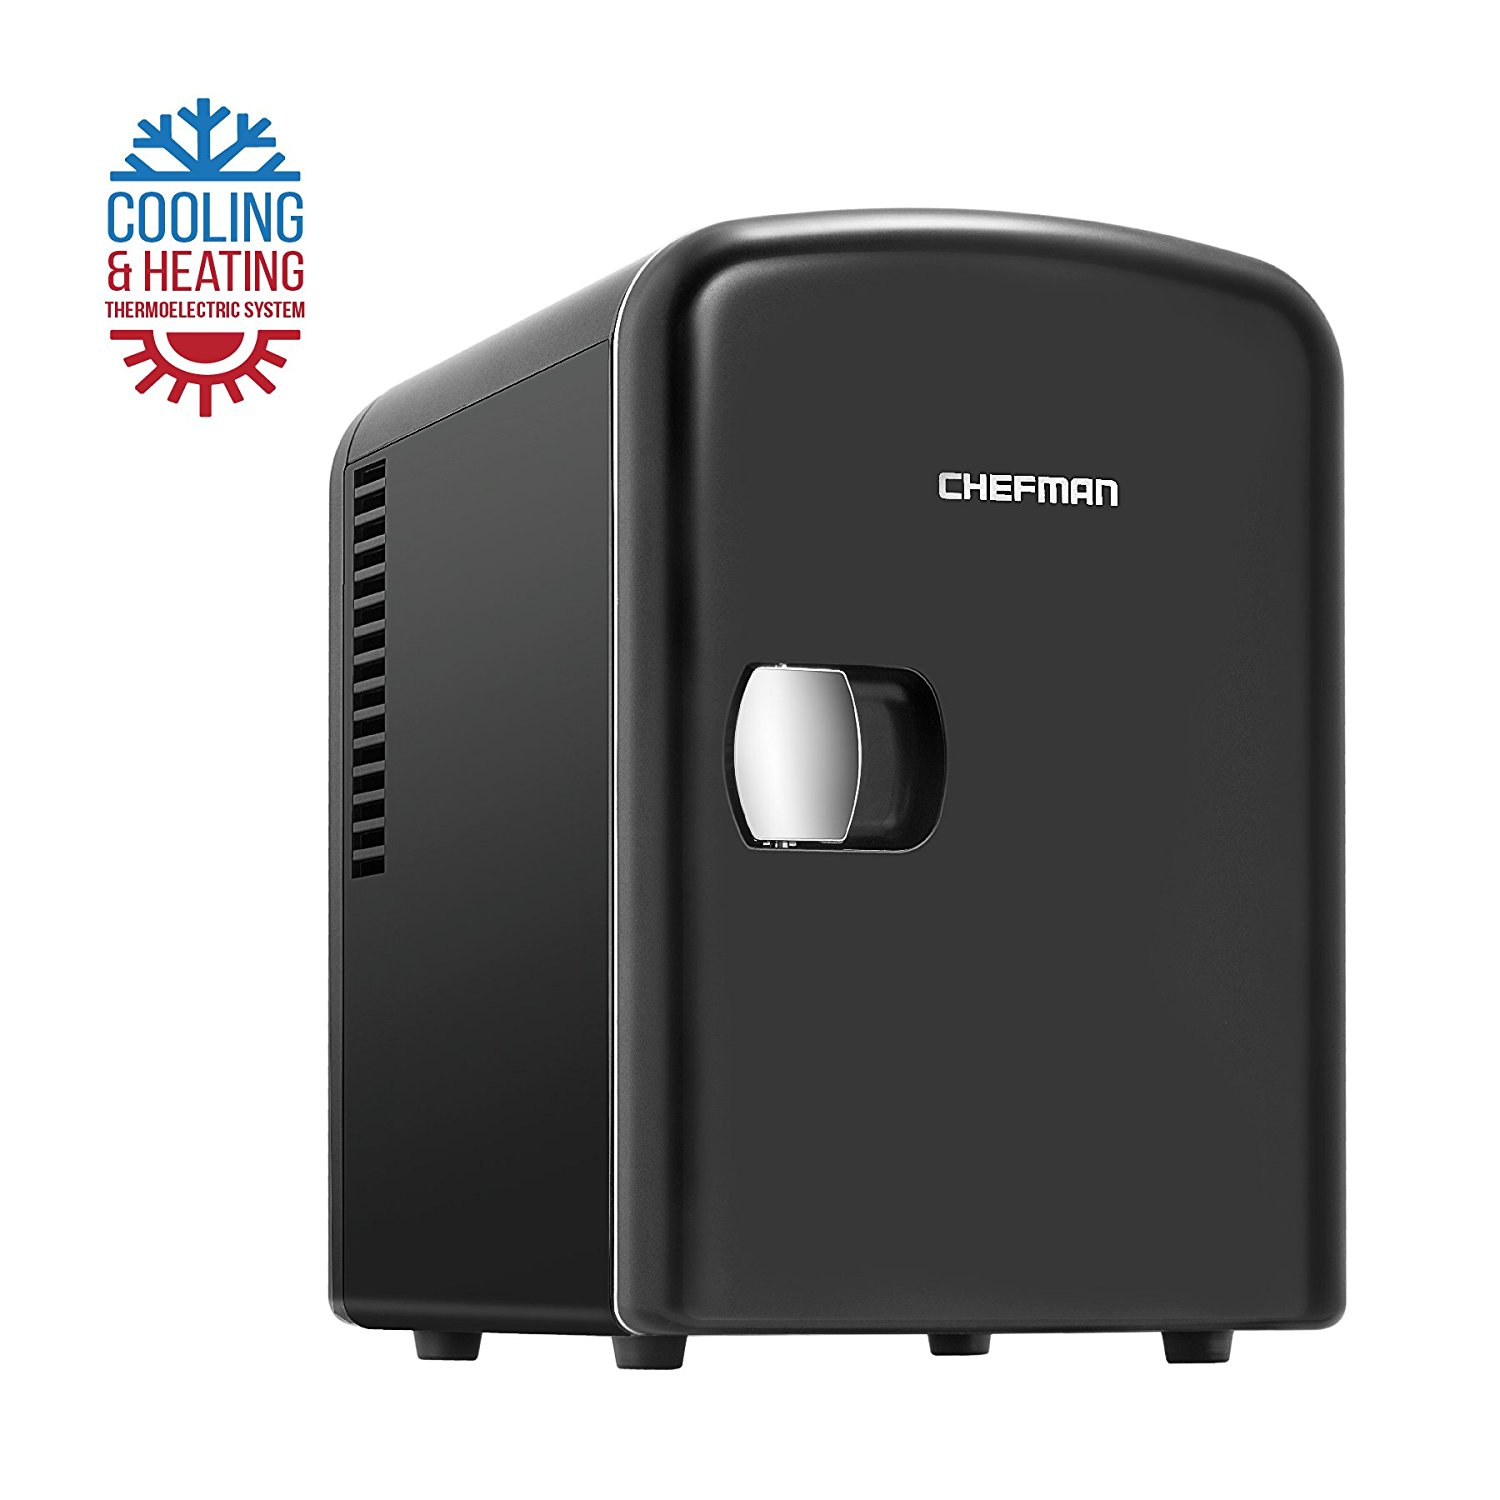 Chefman Portable Compact Personal Fridge Cools & Heats, 4 Liter Capacity Chills Six 12 oz Cans, 100% Freon-Free & Eco Friendly, Includes Plugs for Home Outlet & 12V Car Charger – Black